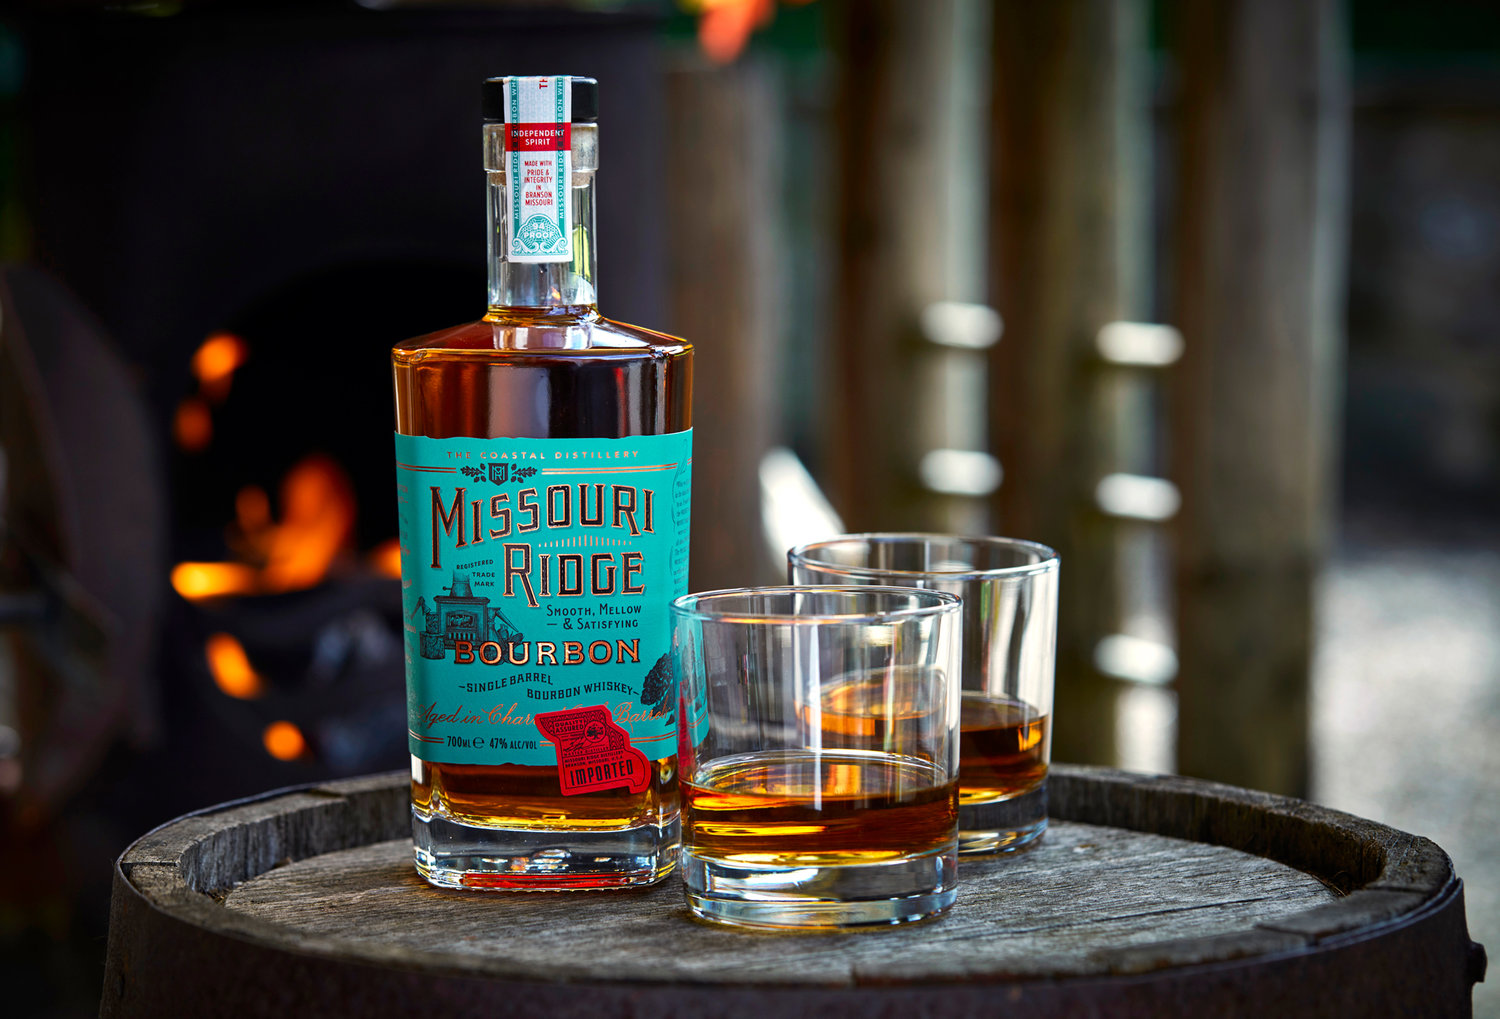 Ginger Monkey Design Creates Eye-catching Missouri Ridge Bourbon Label